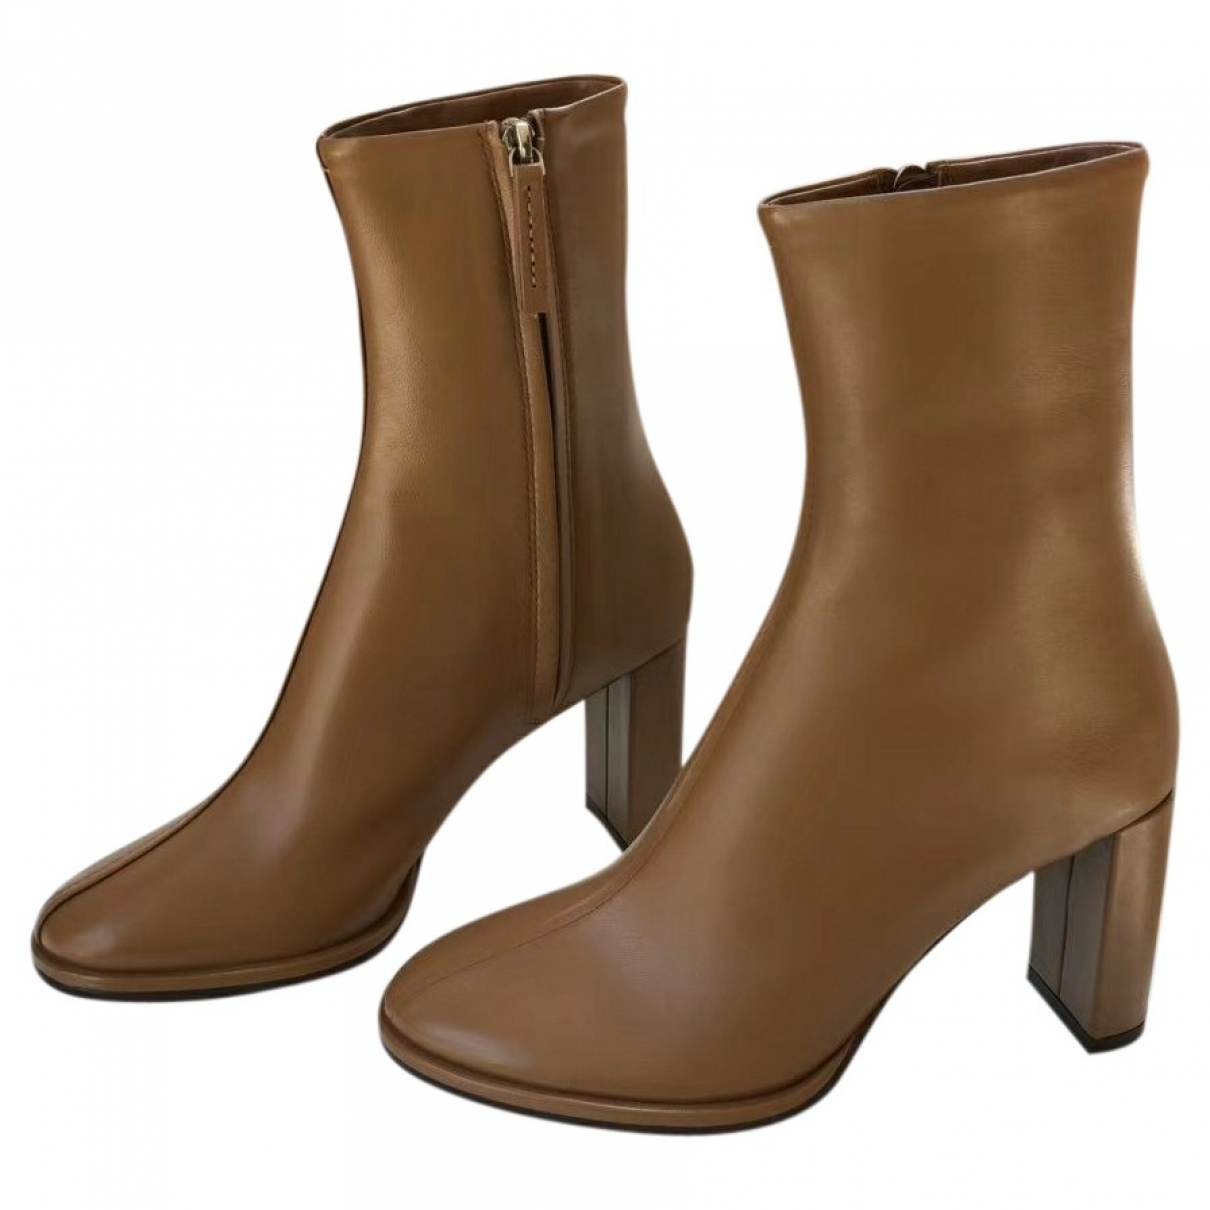 Botas altas de Cuero The Row